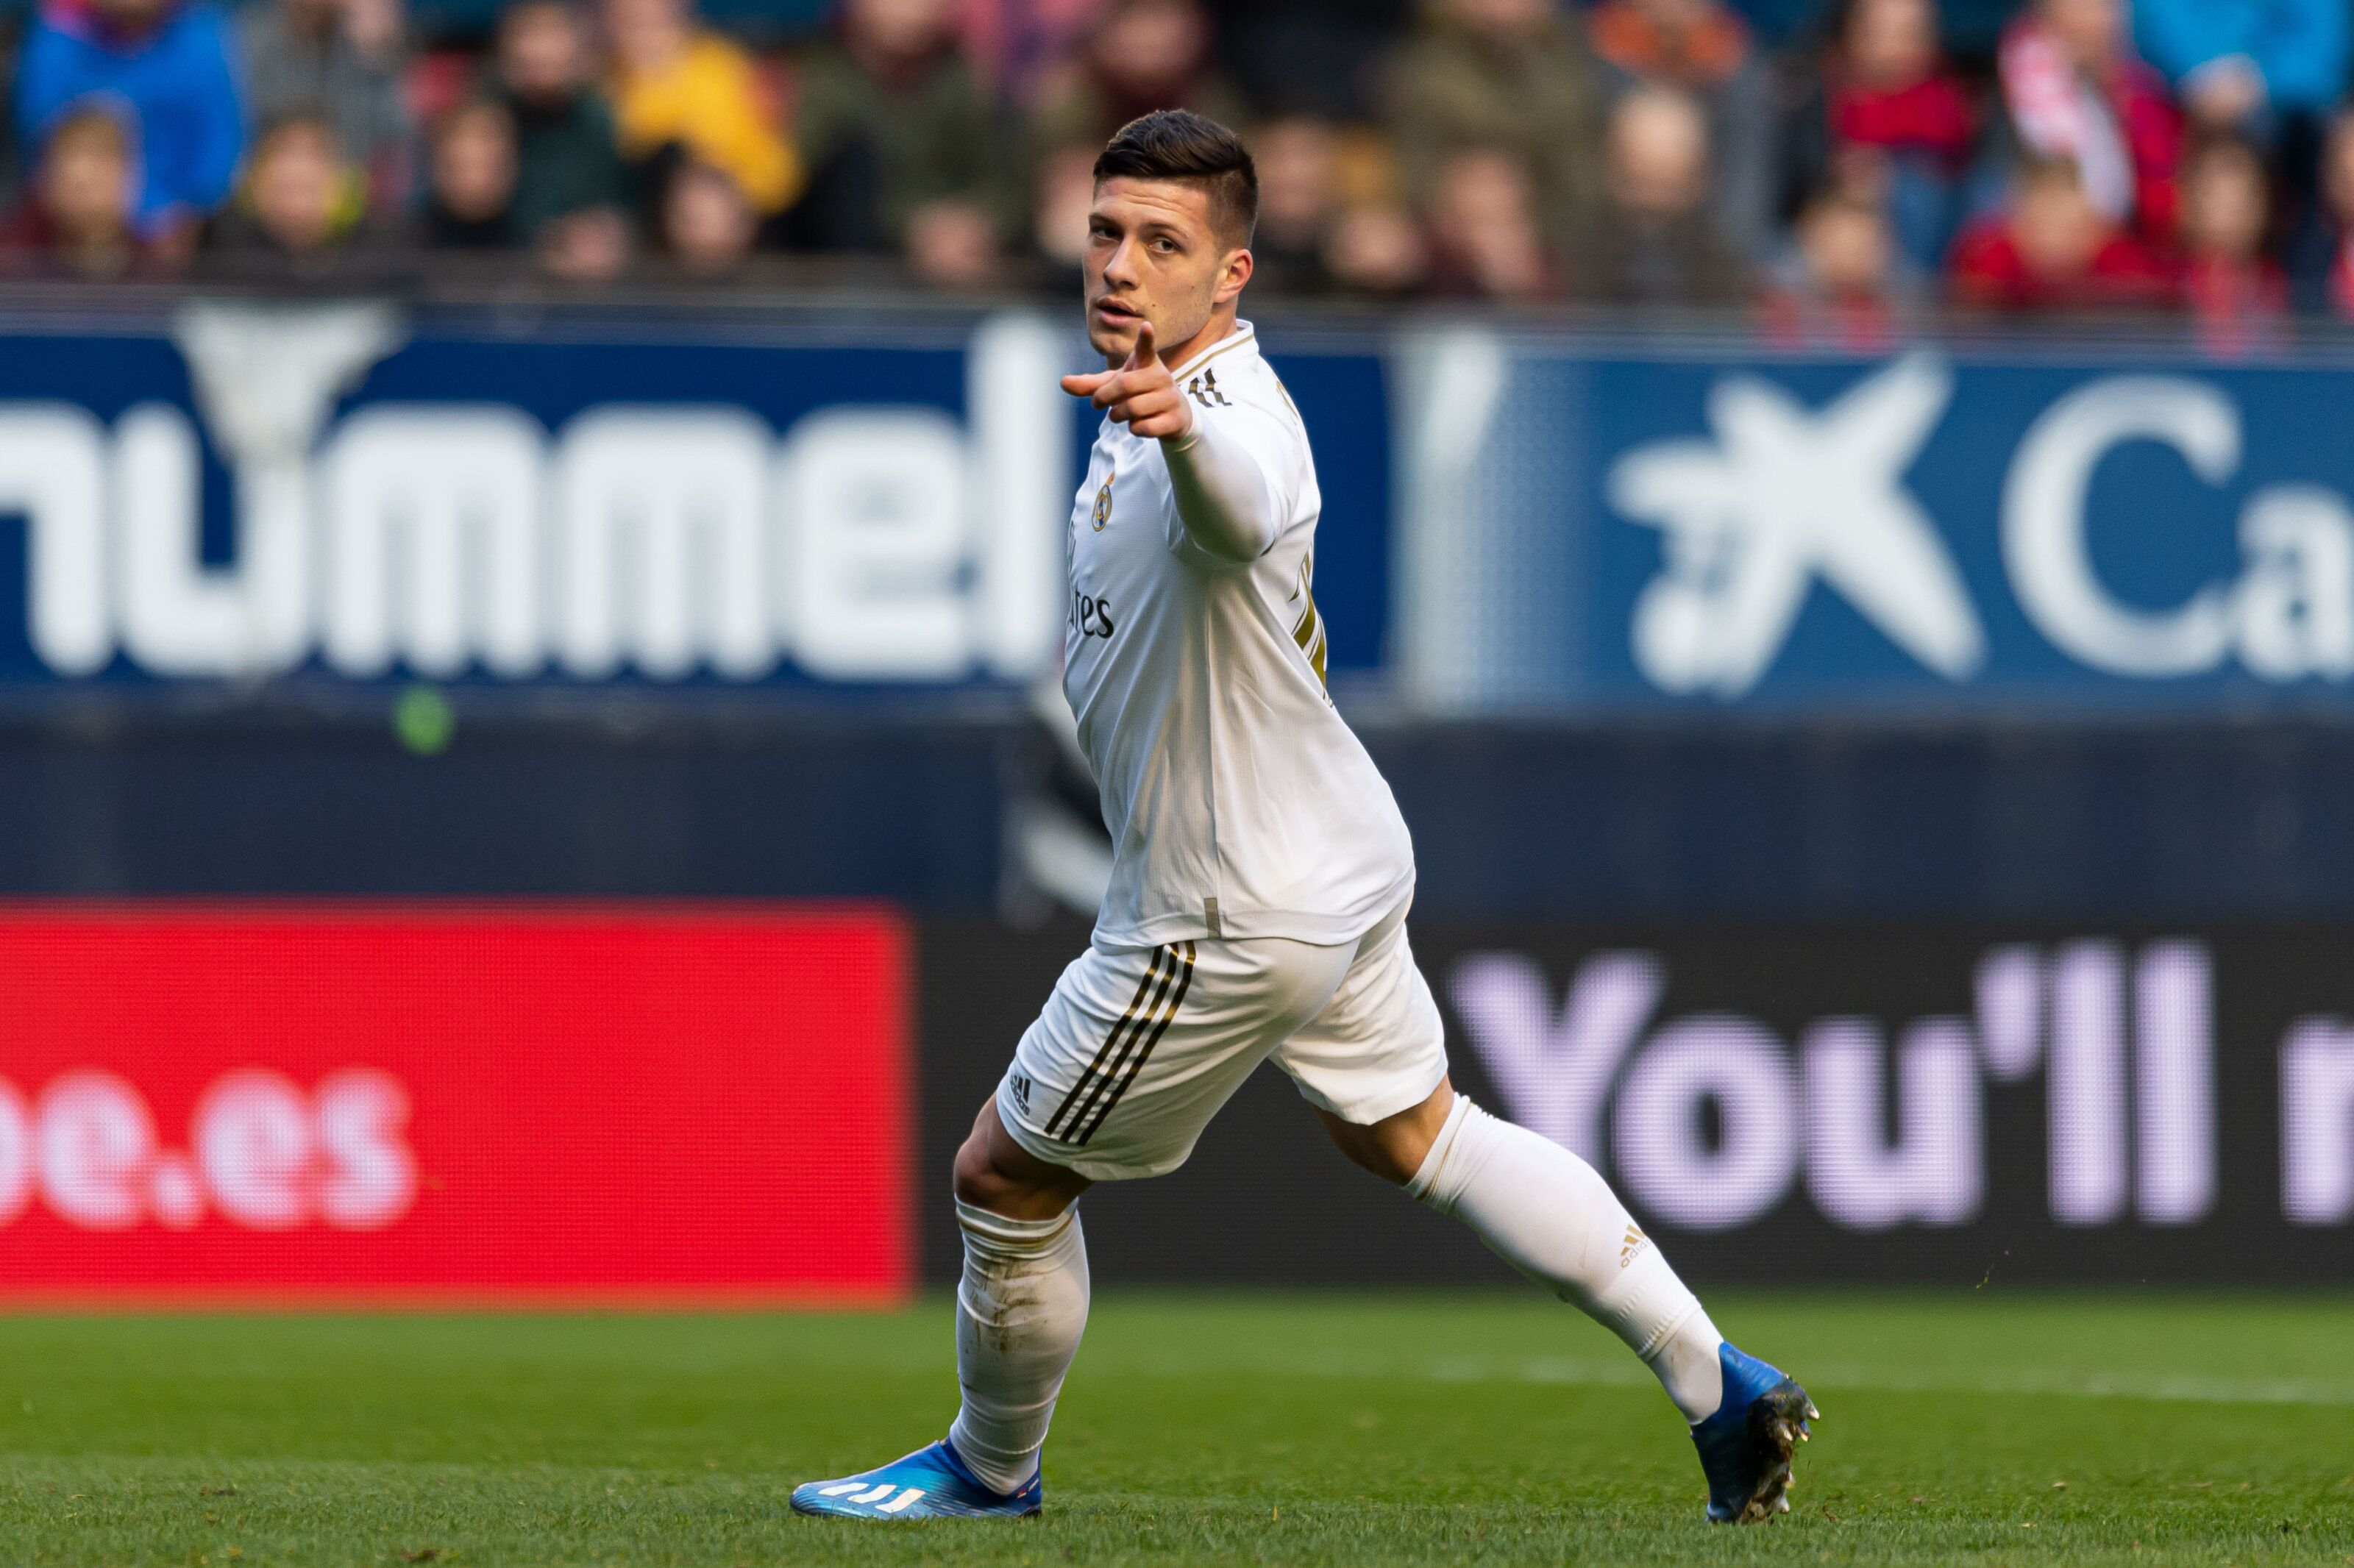 Real Madrid: The flashes of brilliance from Luka Jovic are clear